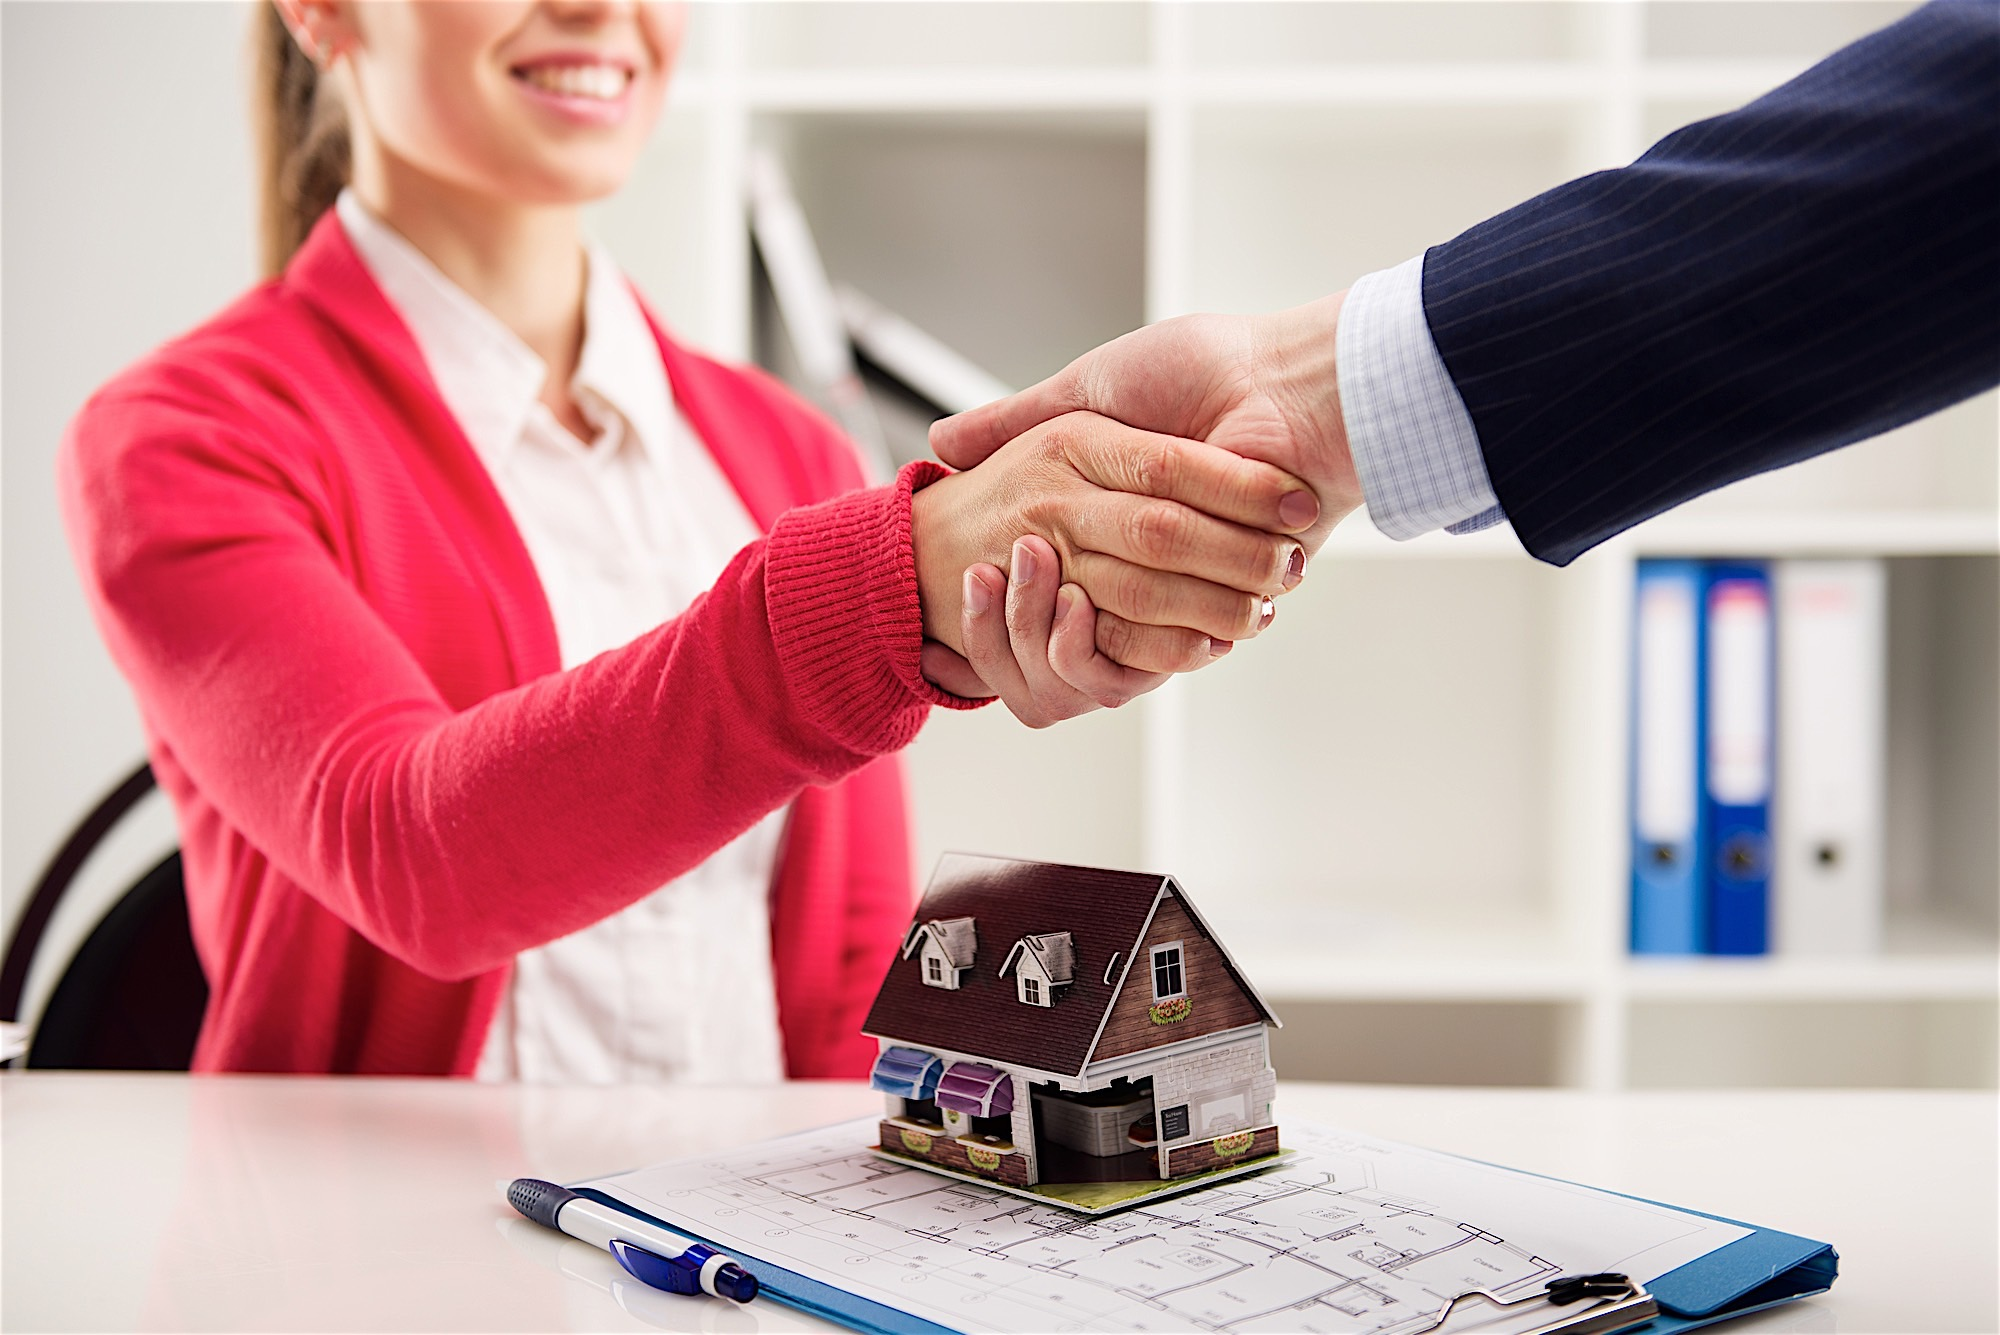 6 Tips for First-Time Home Buyers